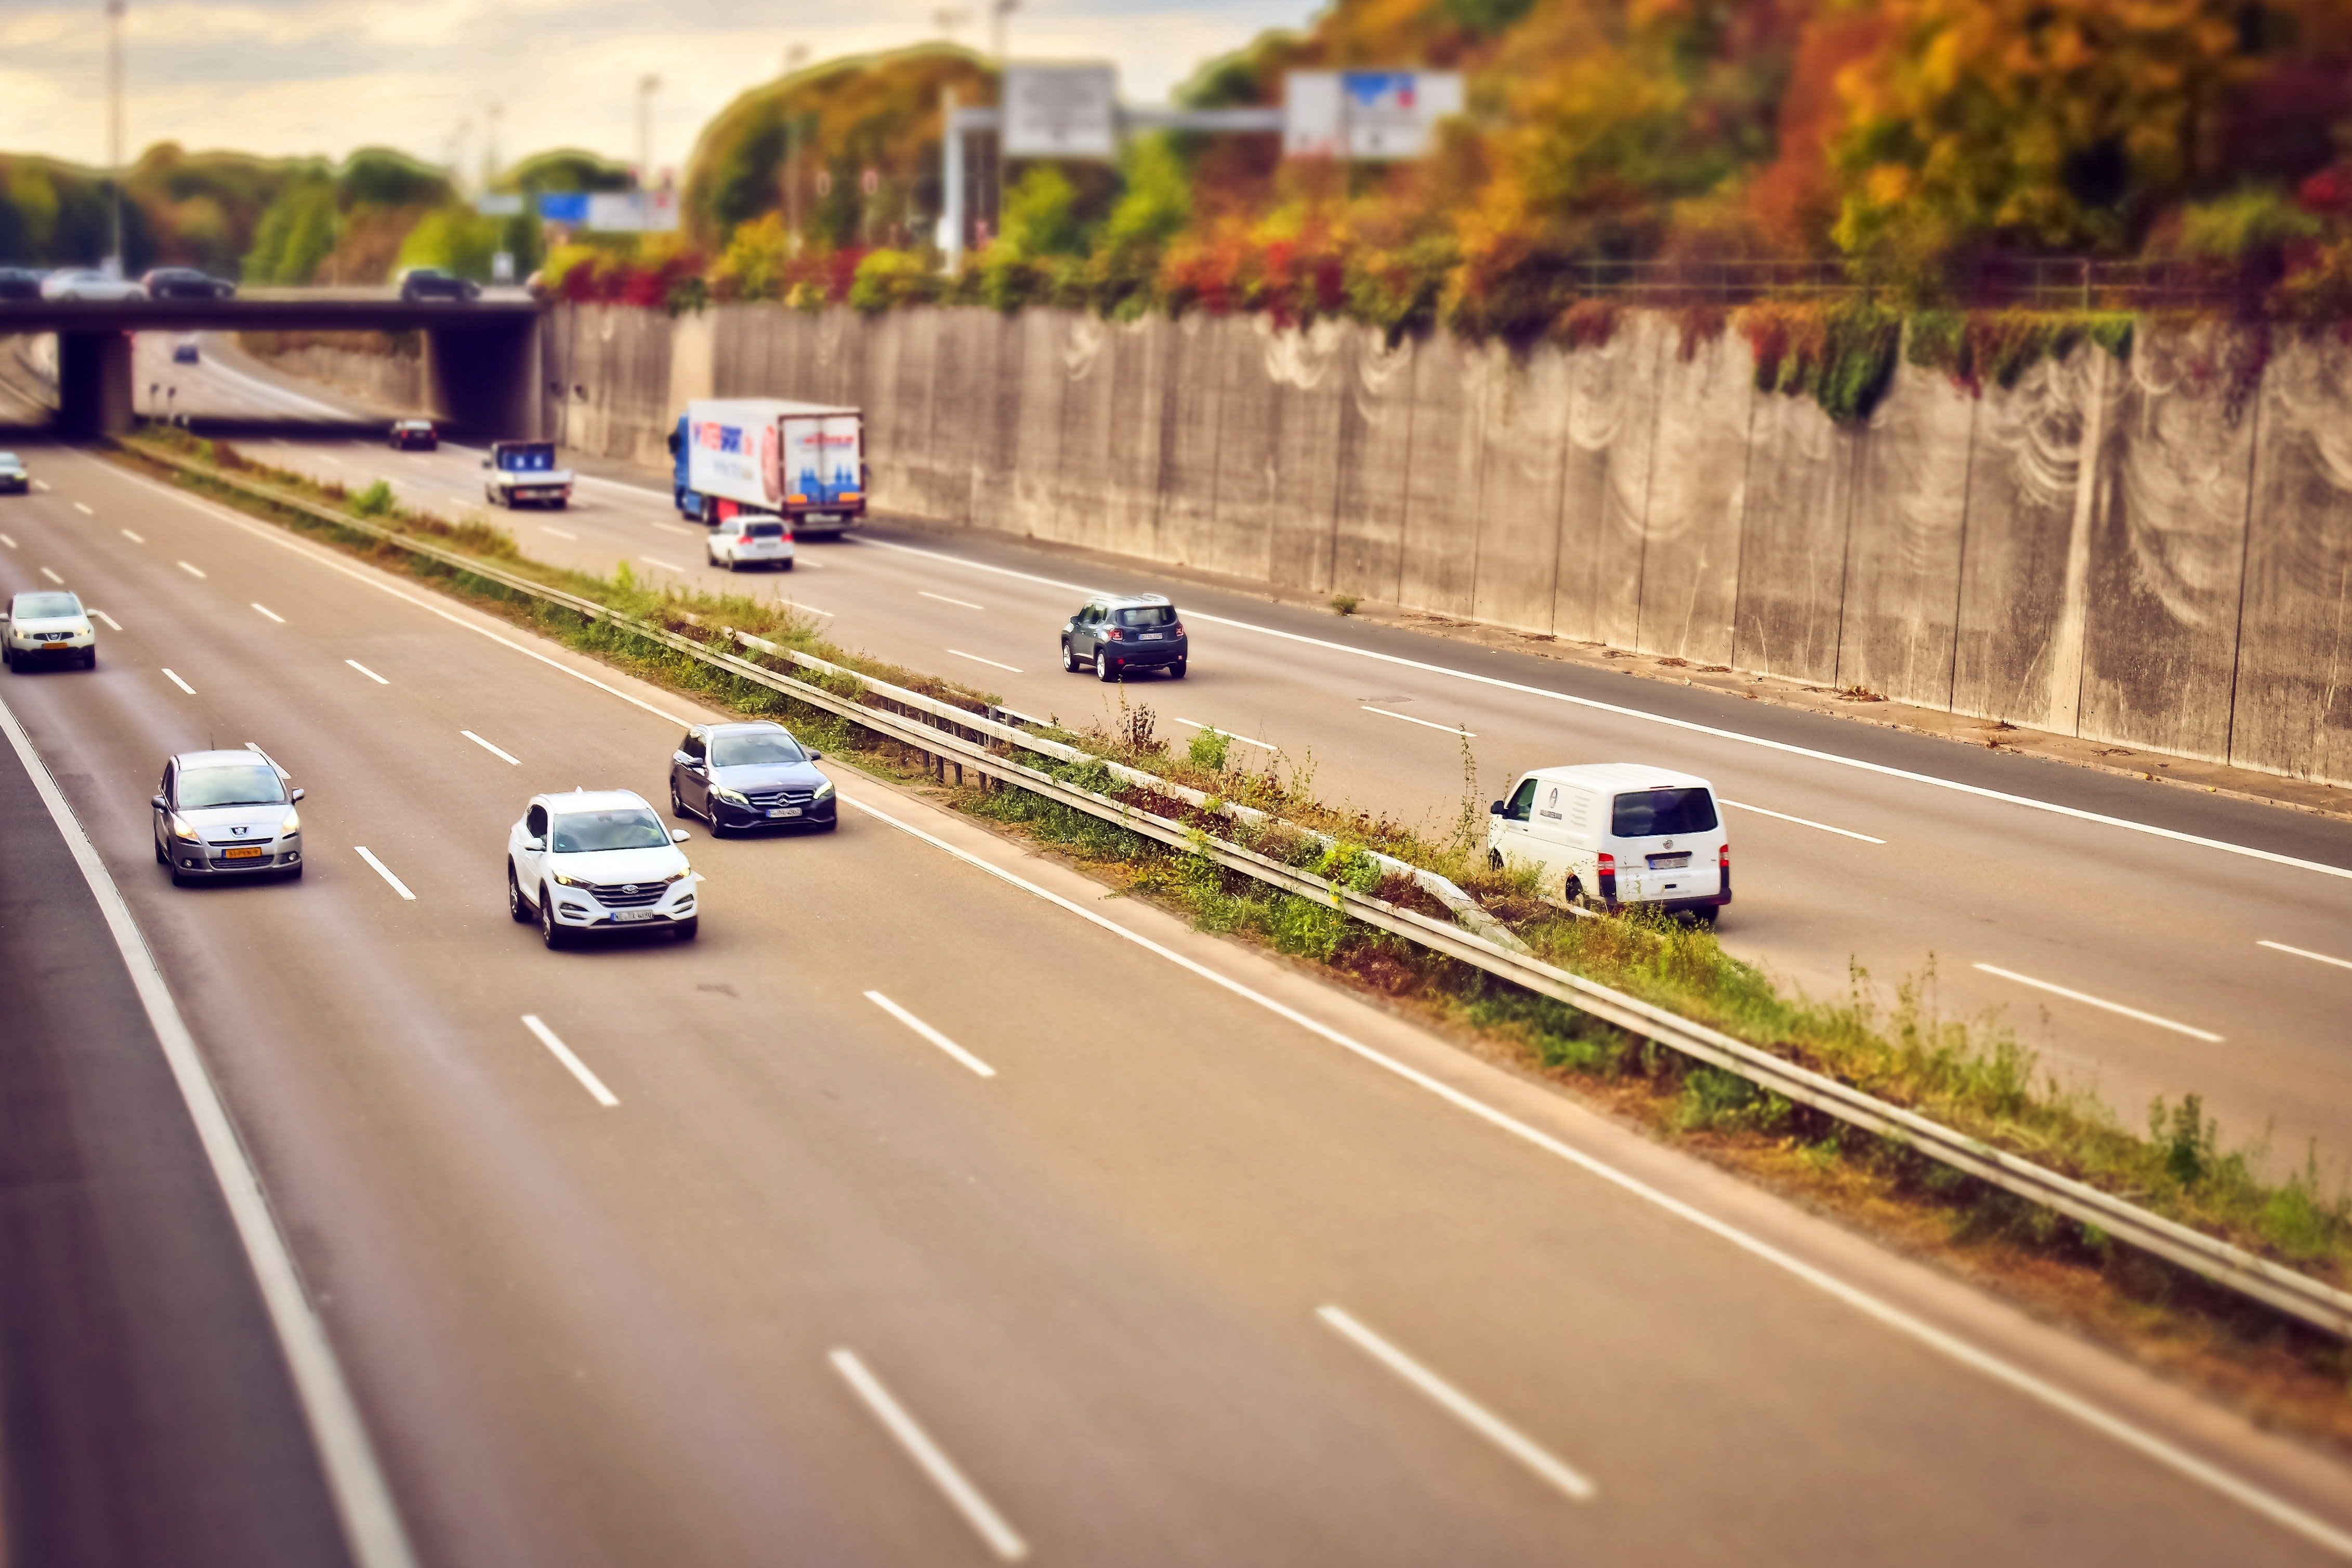 Pictured - Vehicles on the highway   Source: Pexels